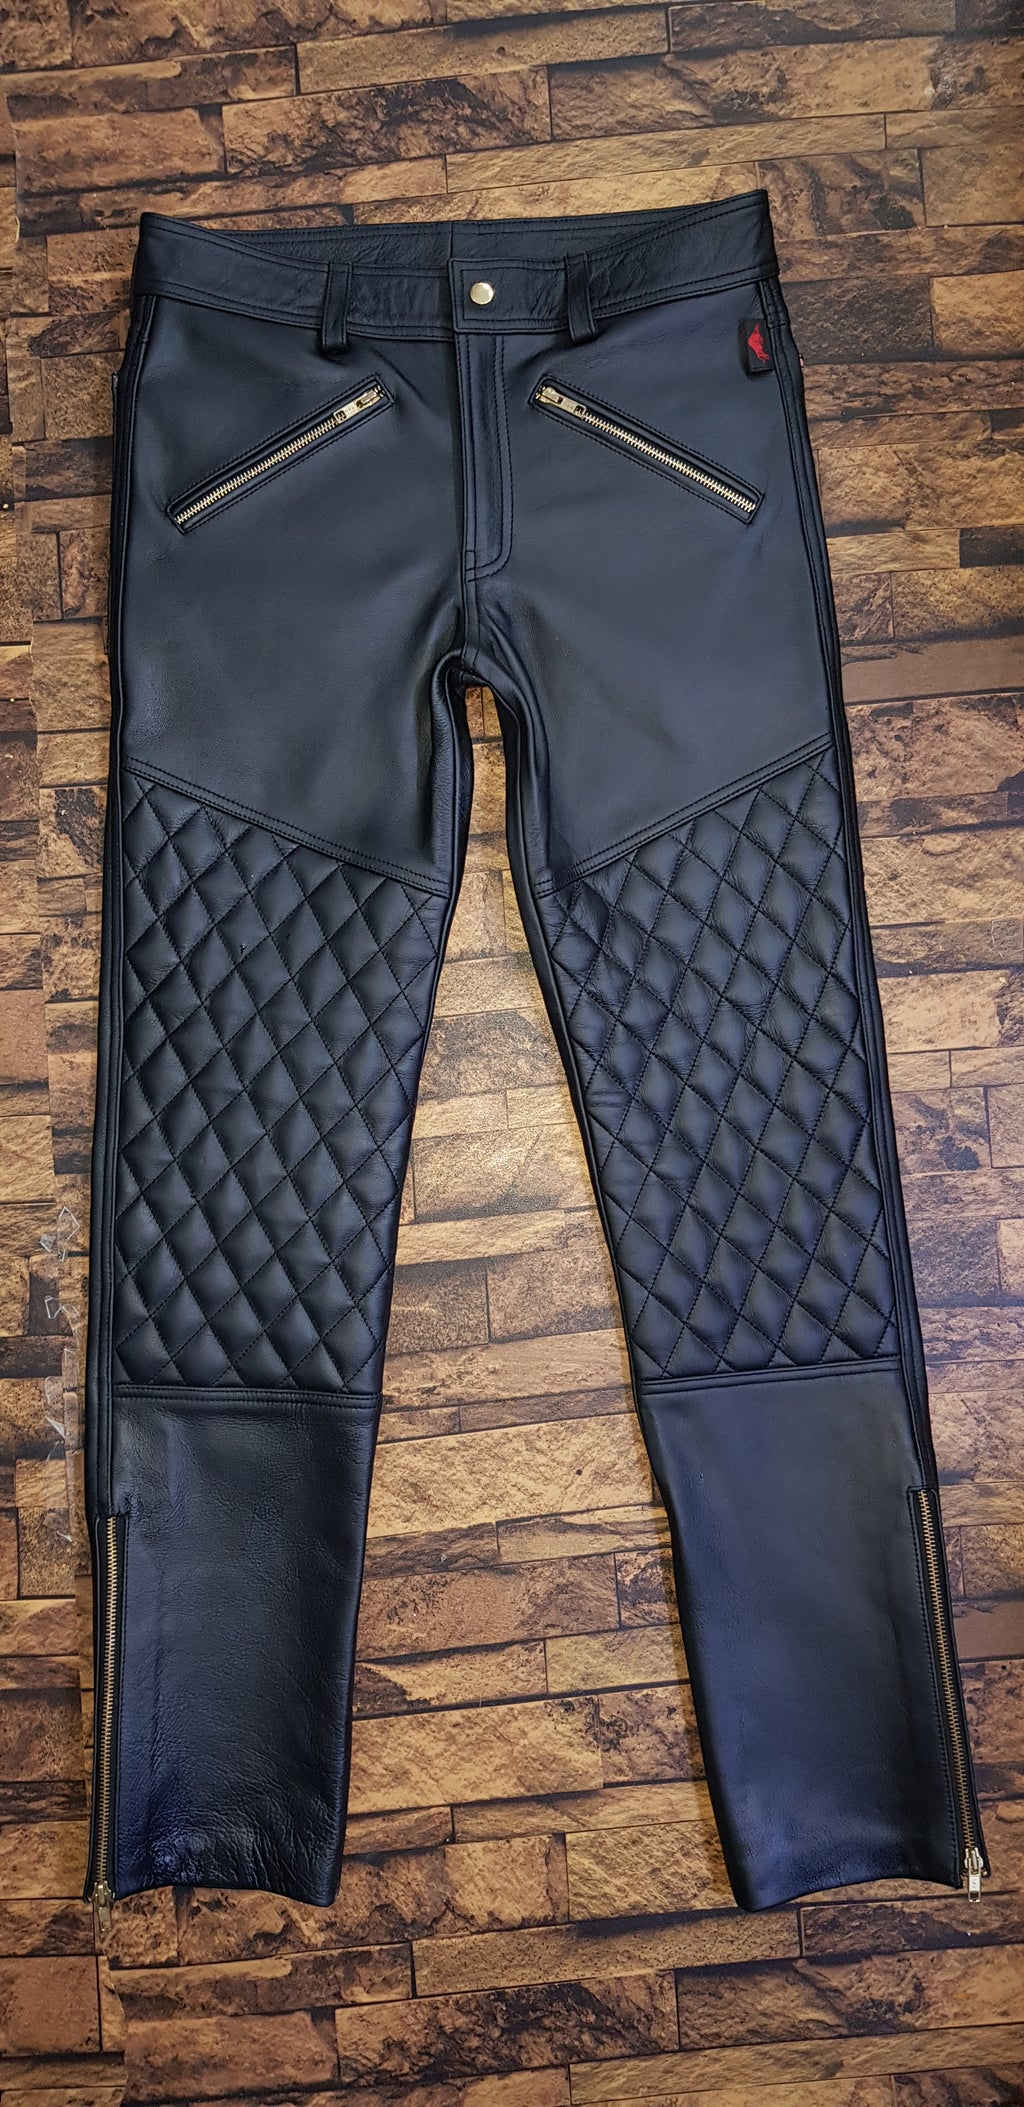 TAURUS LEATHER Cow Leather Quilted Design Pant With Golden Accessories